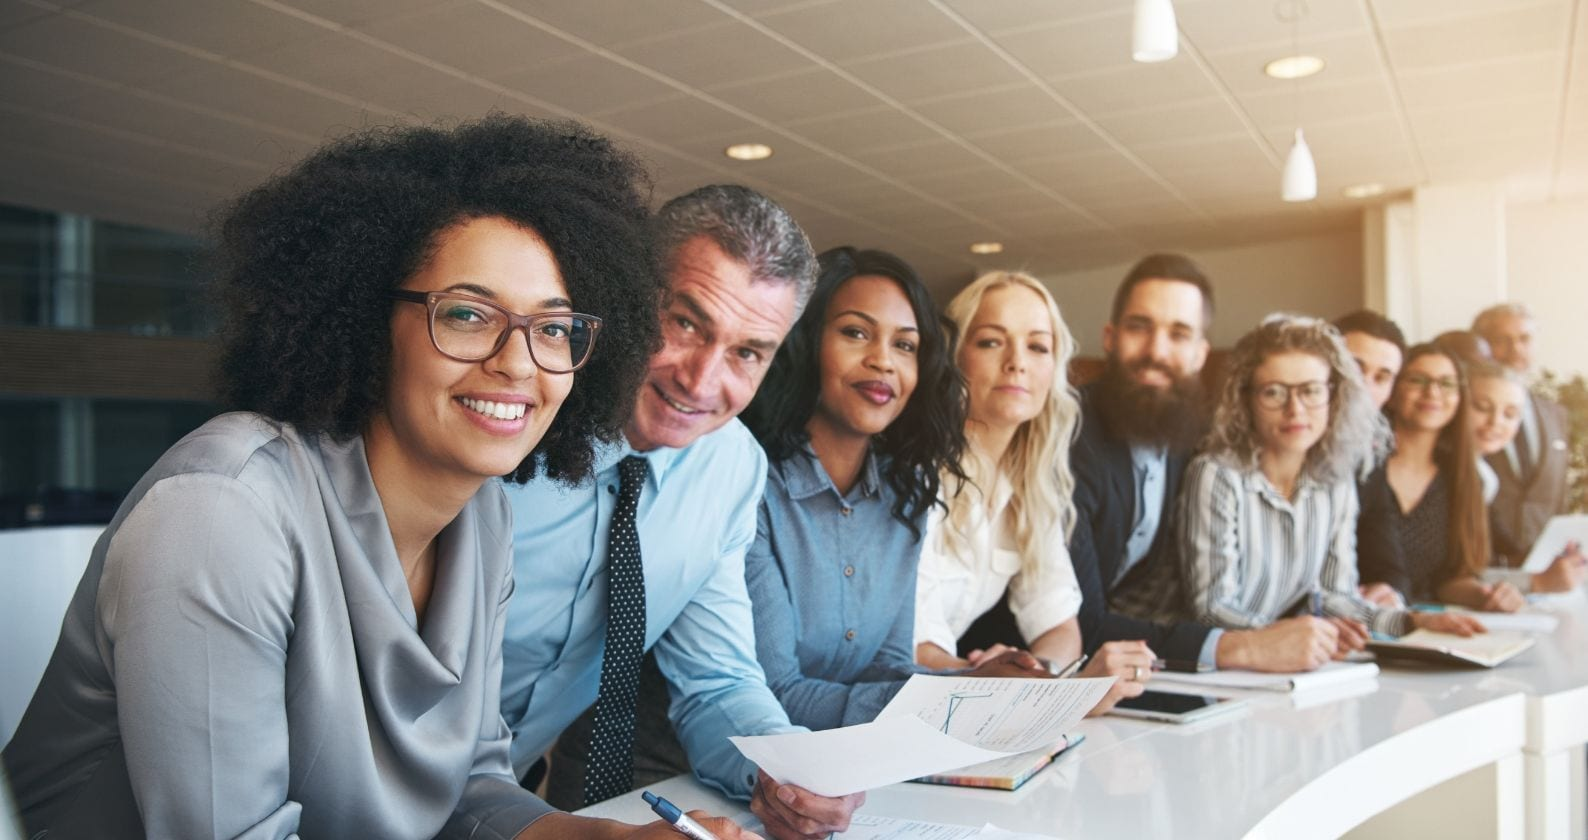 Diversity at Work: building capability through inclusive practice